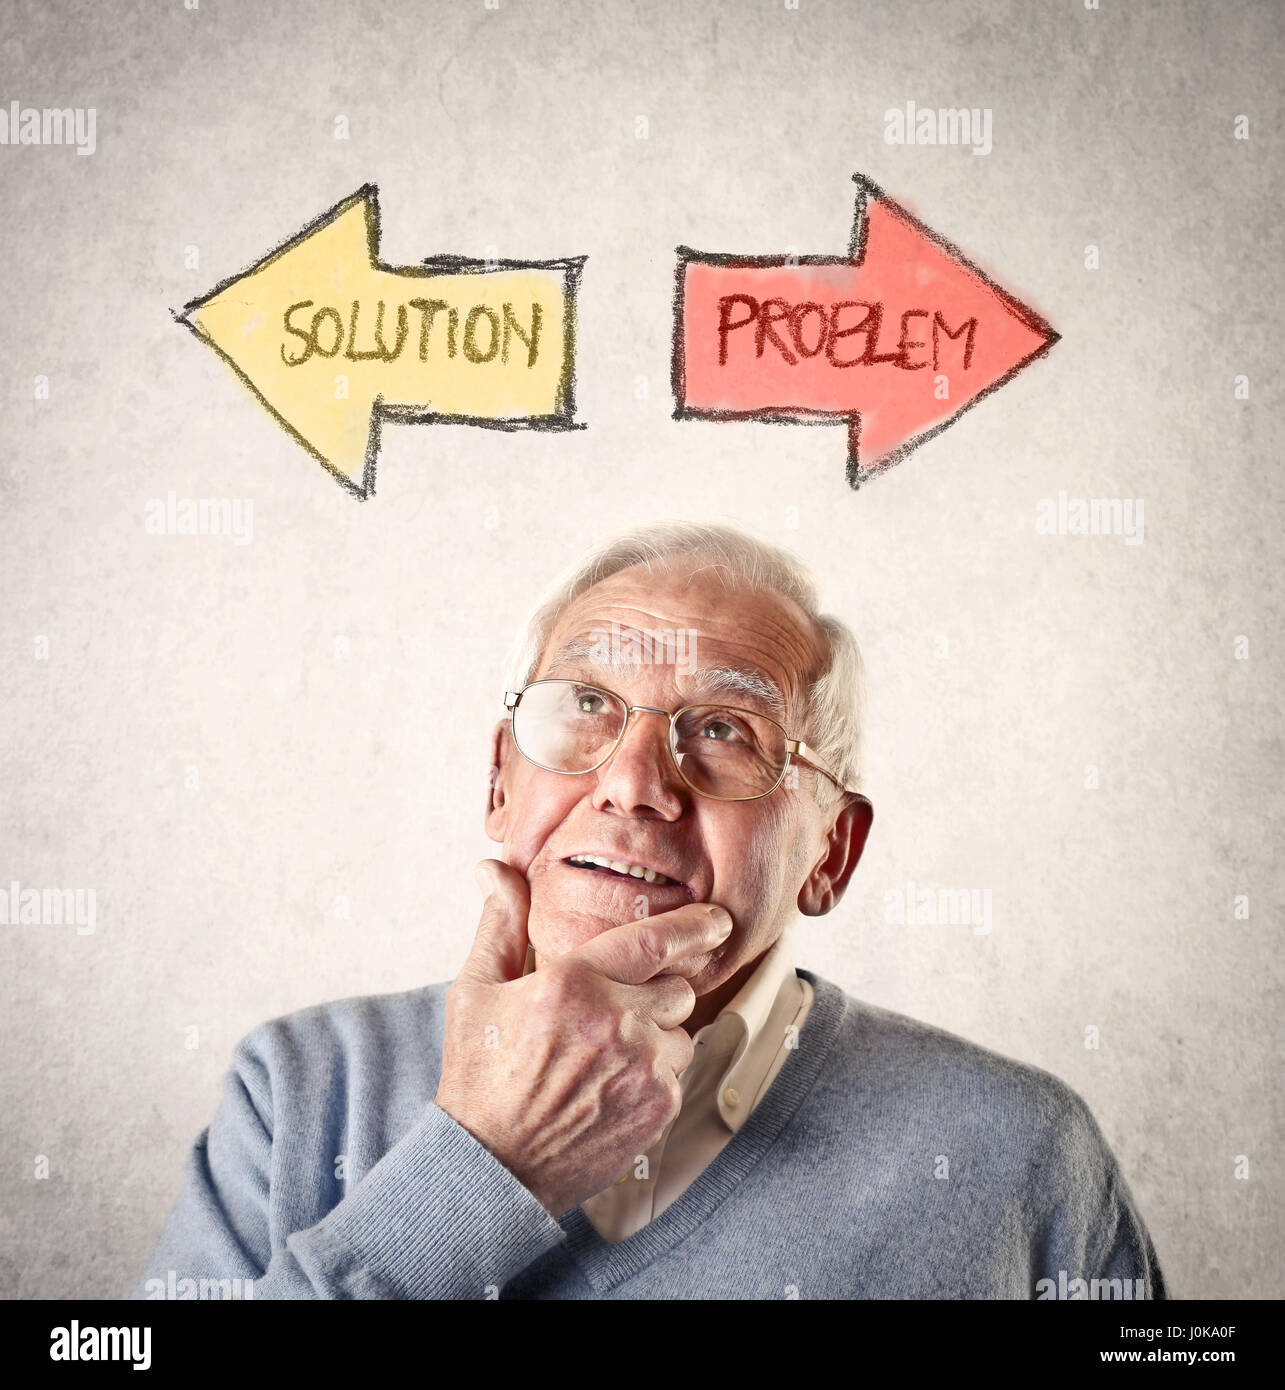 Old man thinking about problem solving - Stock Image